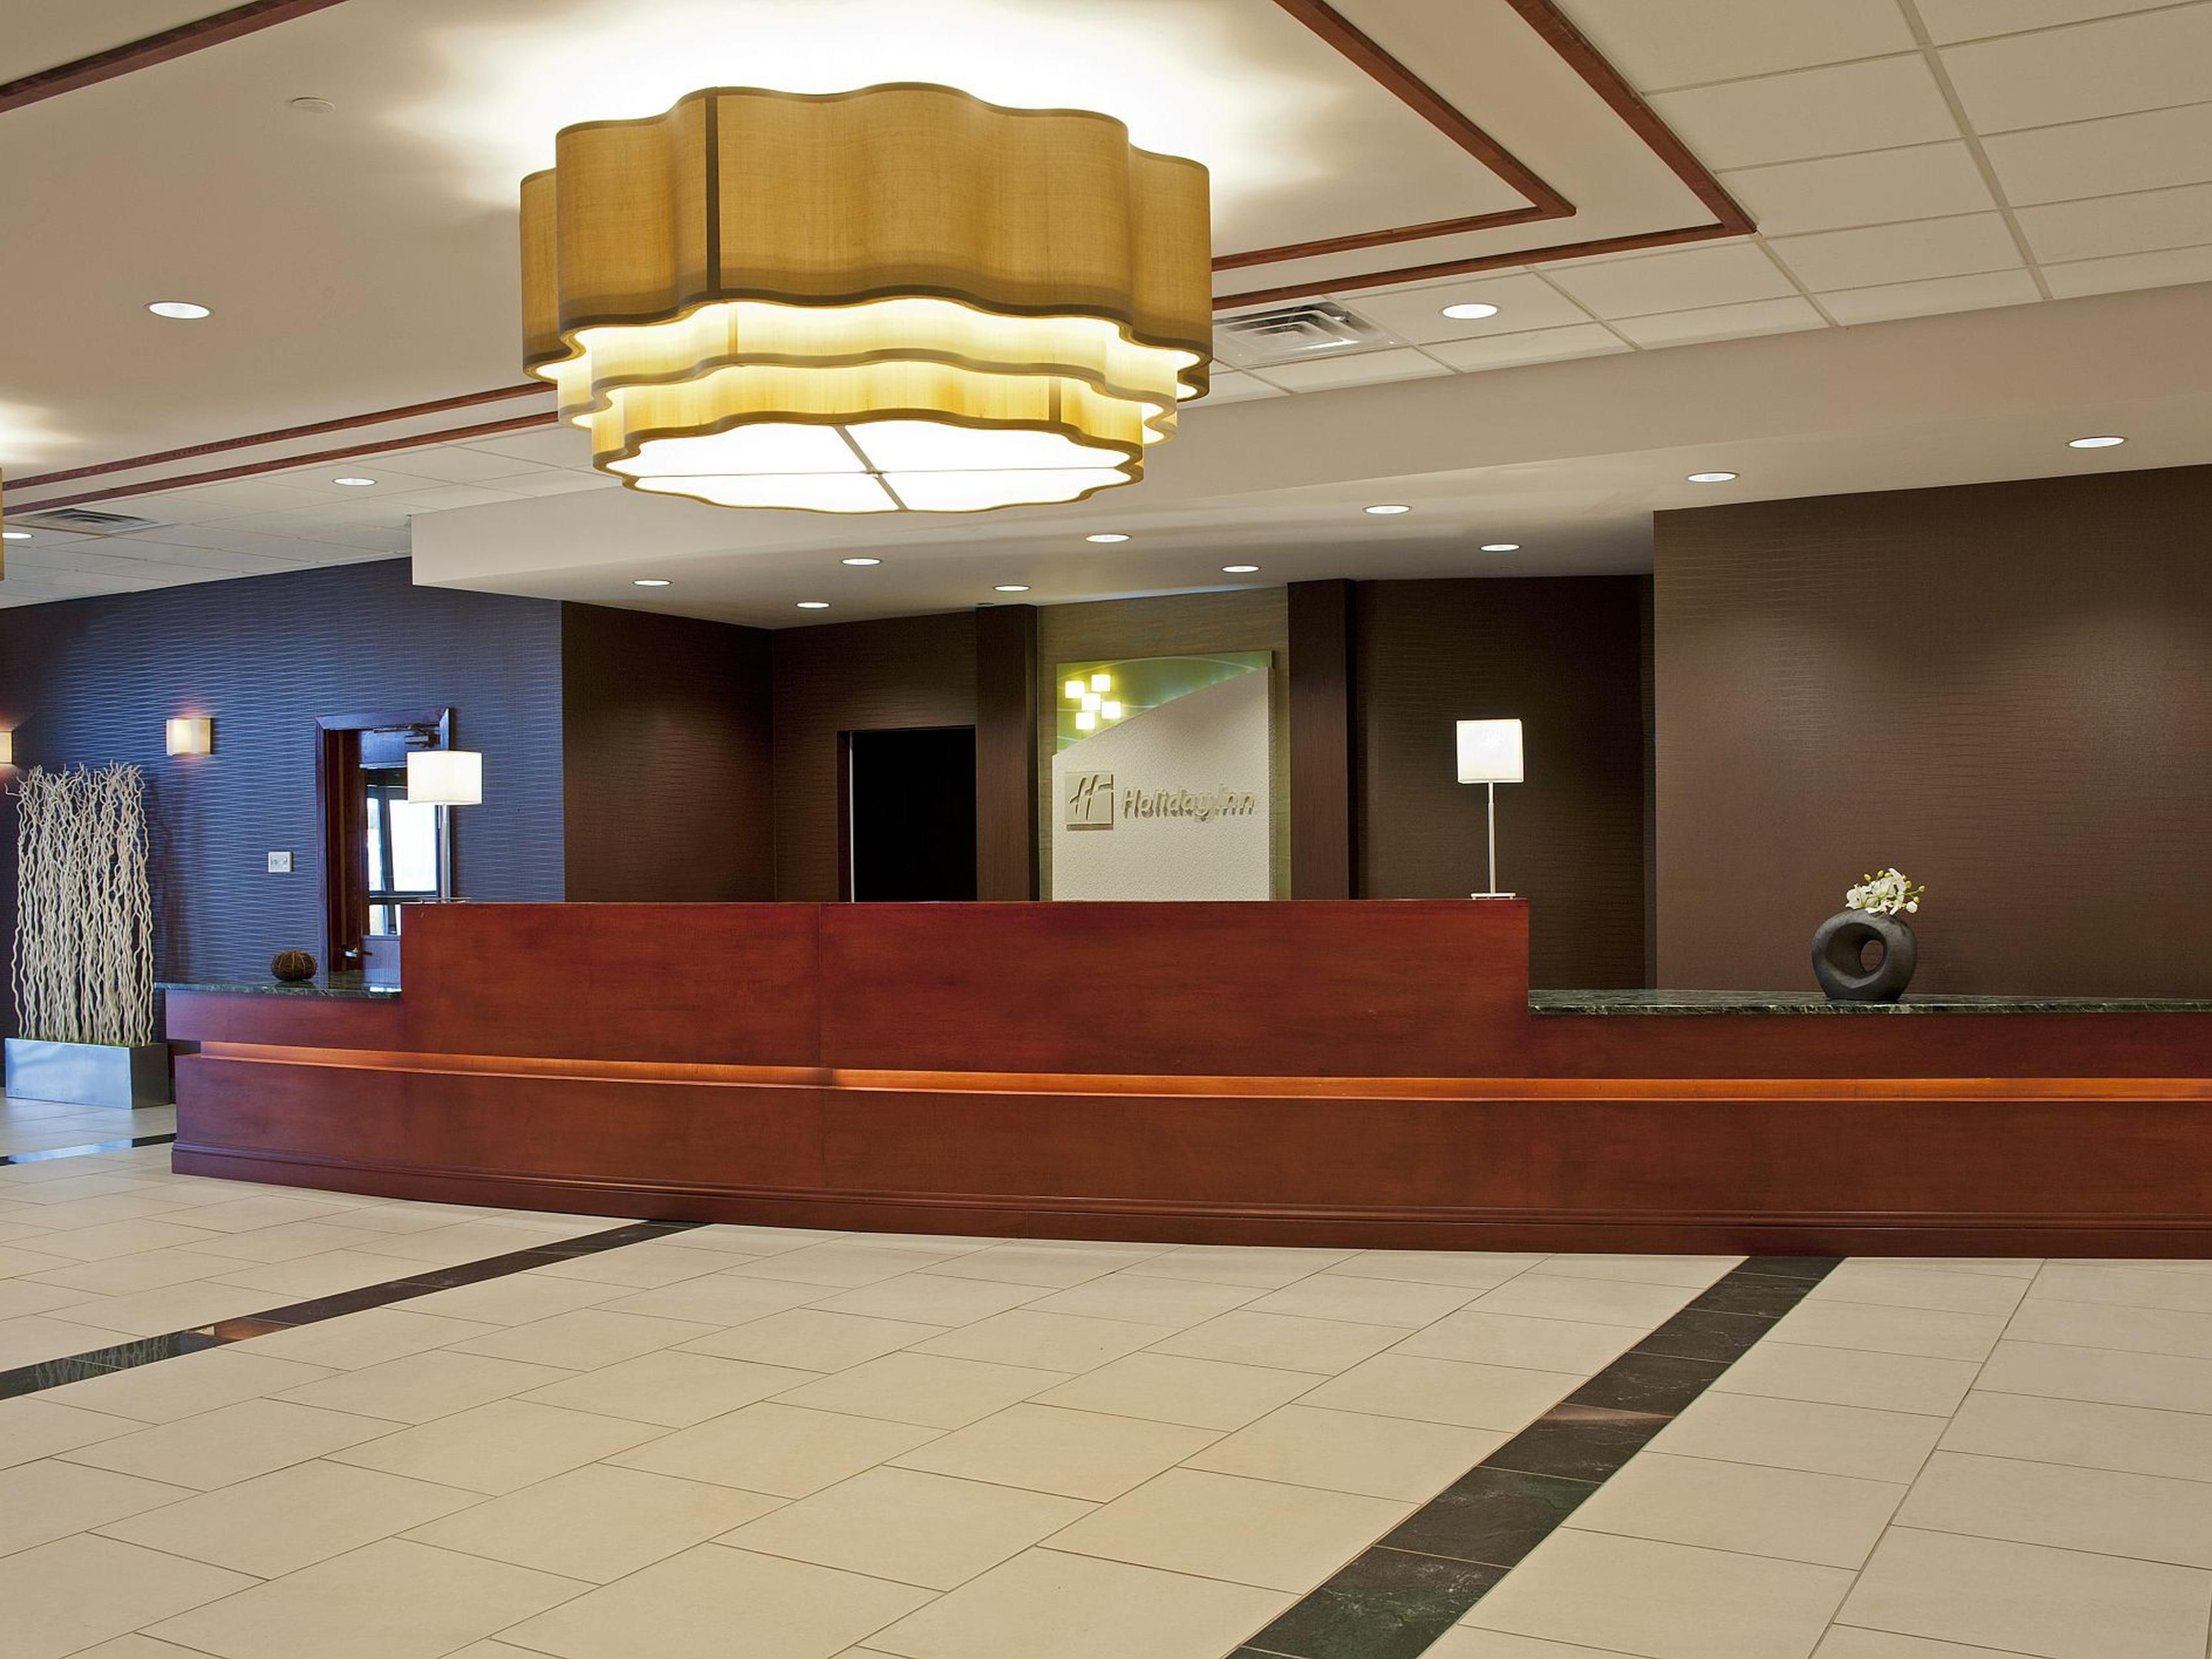 Warm Welcomes Await -  Front Desk at Holiday Inn Itasca near OHare